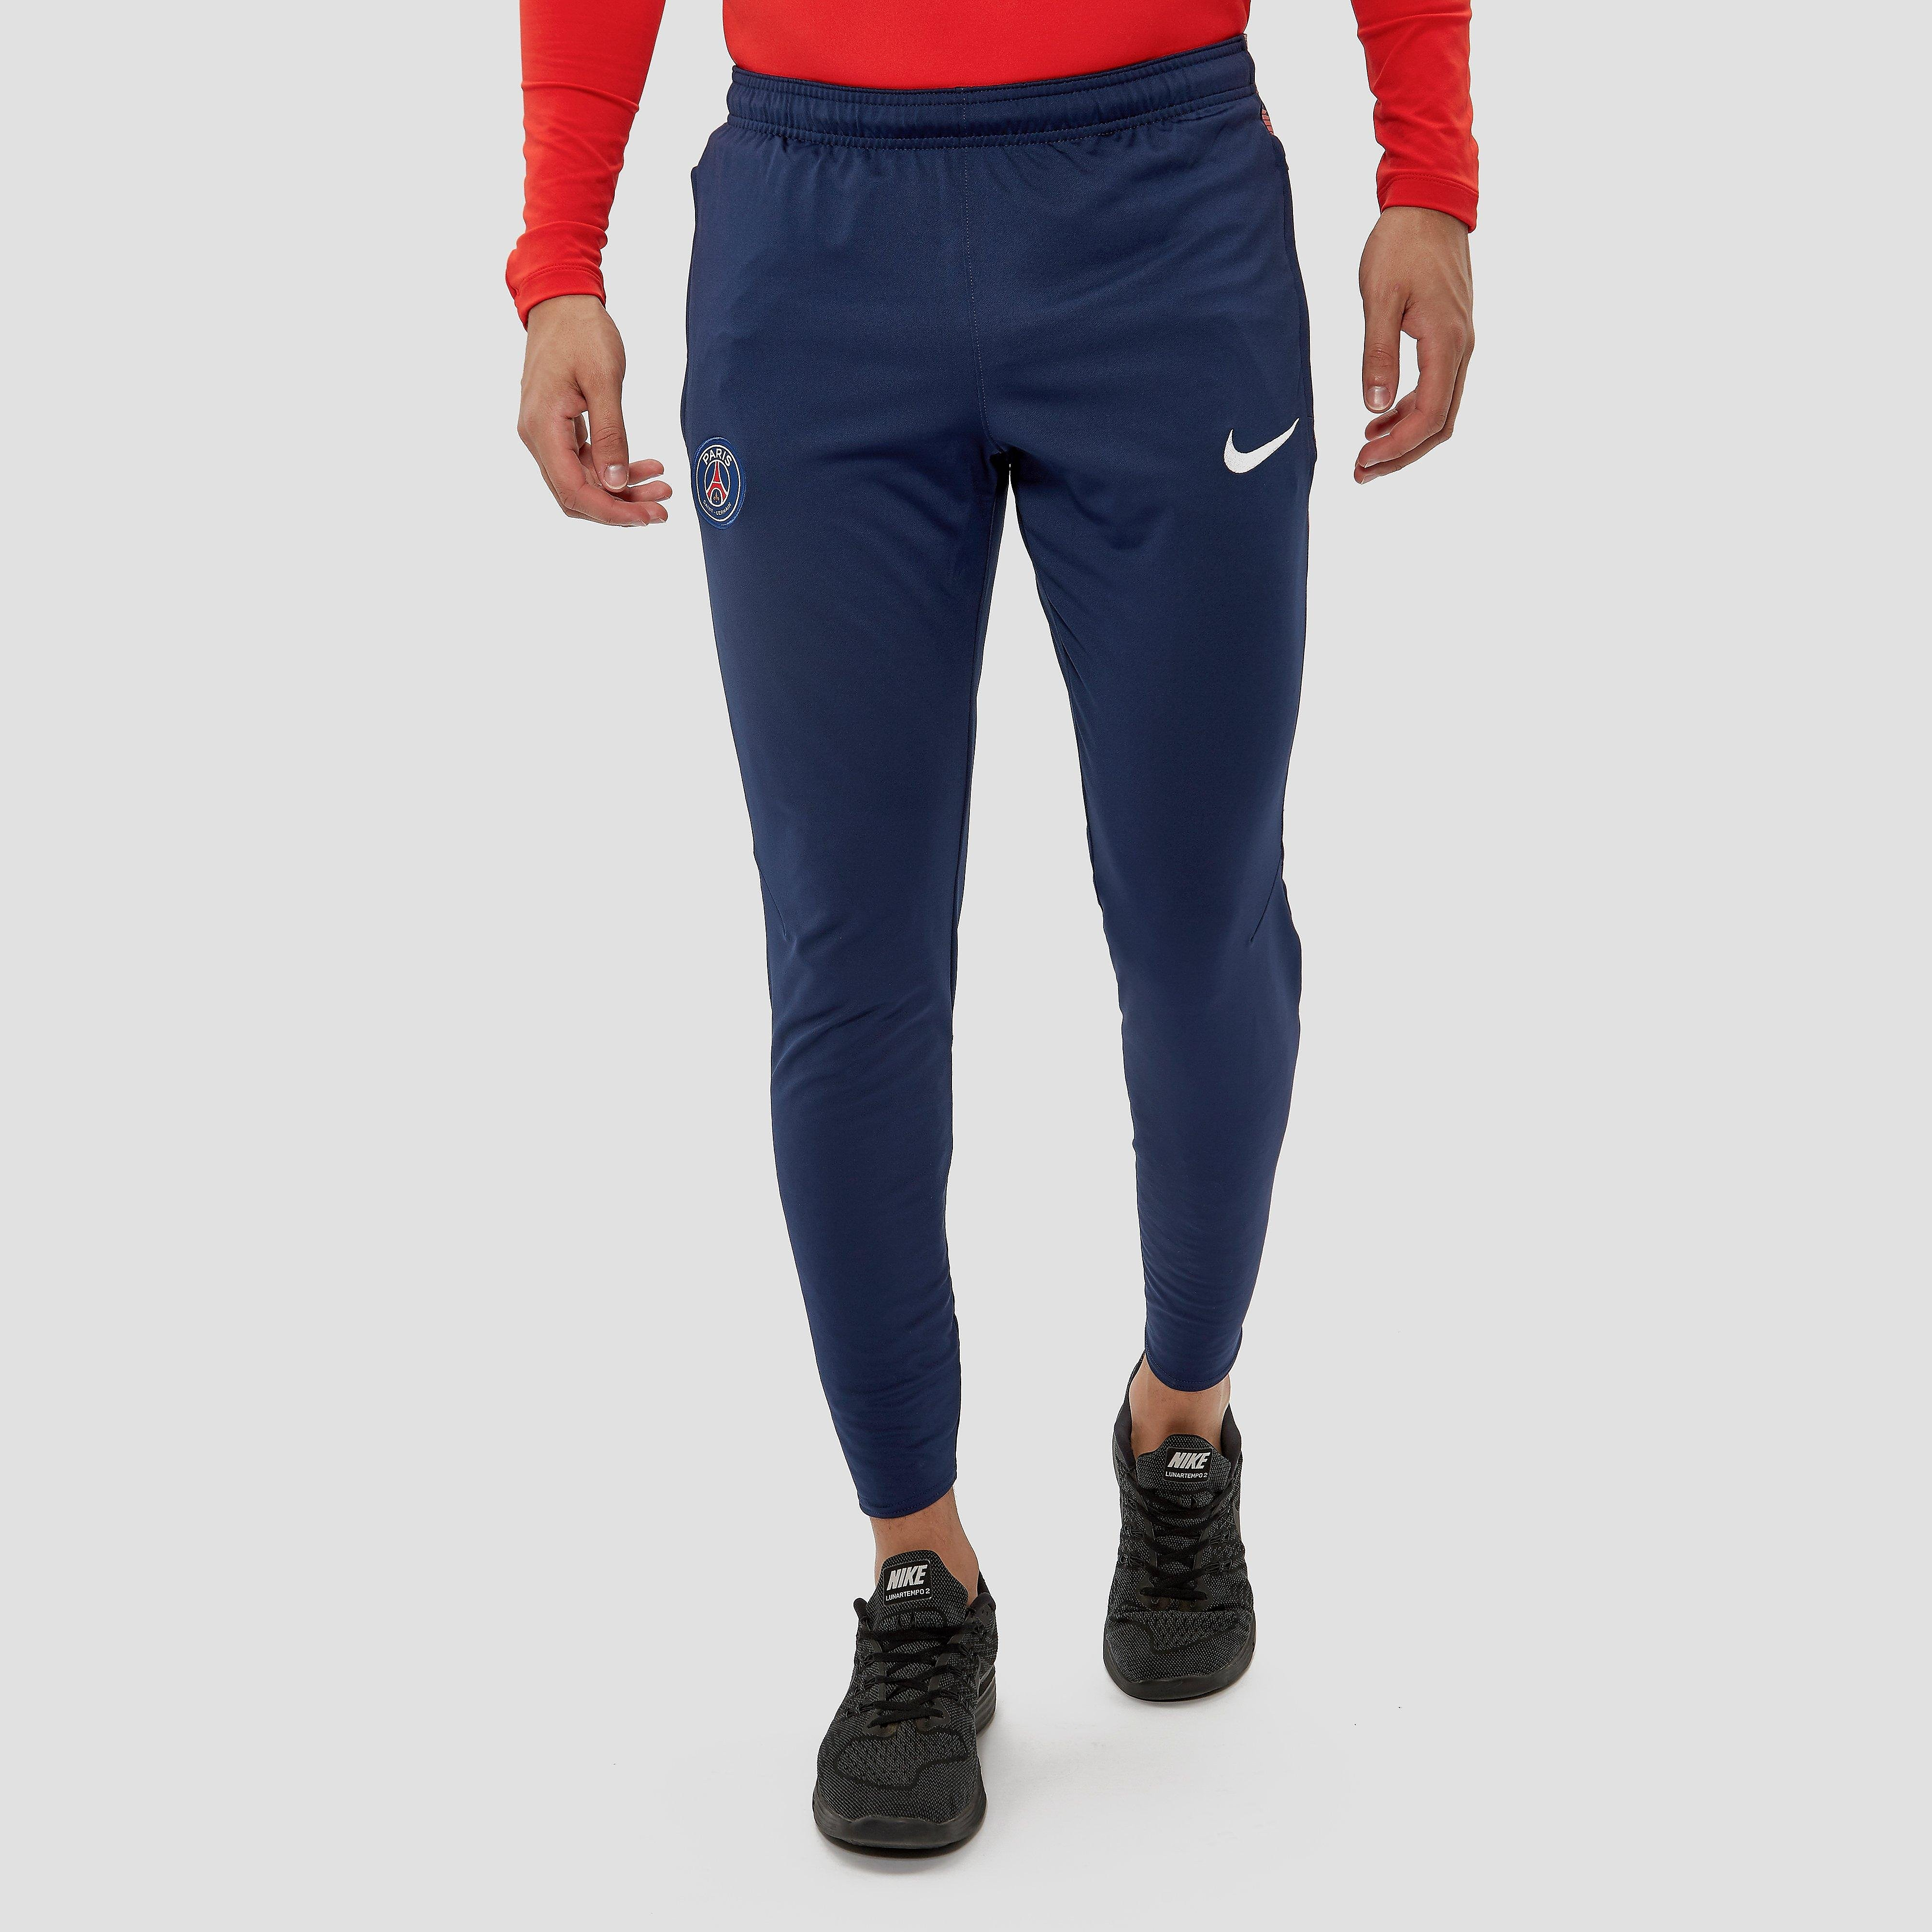 NIKE PSG TRAININGSBROEK 17/18 BLAUW HEREN